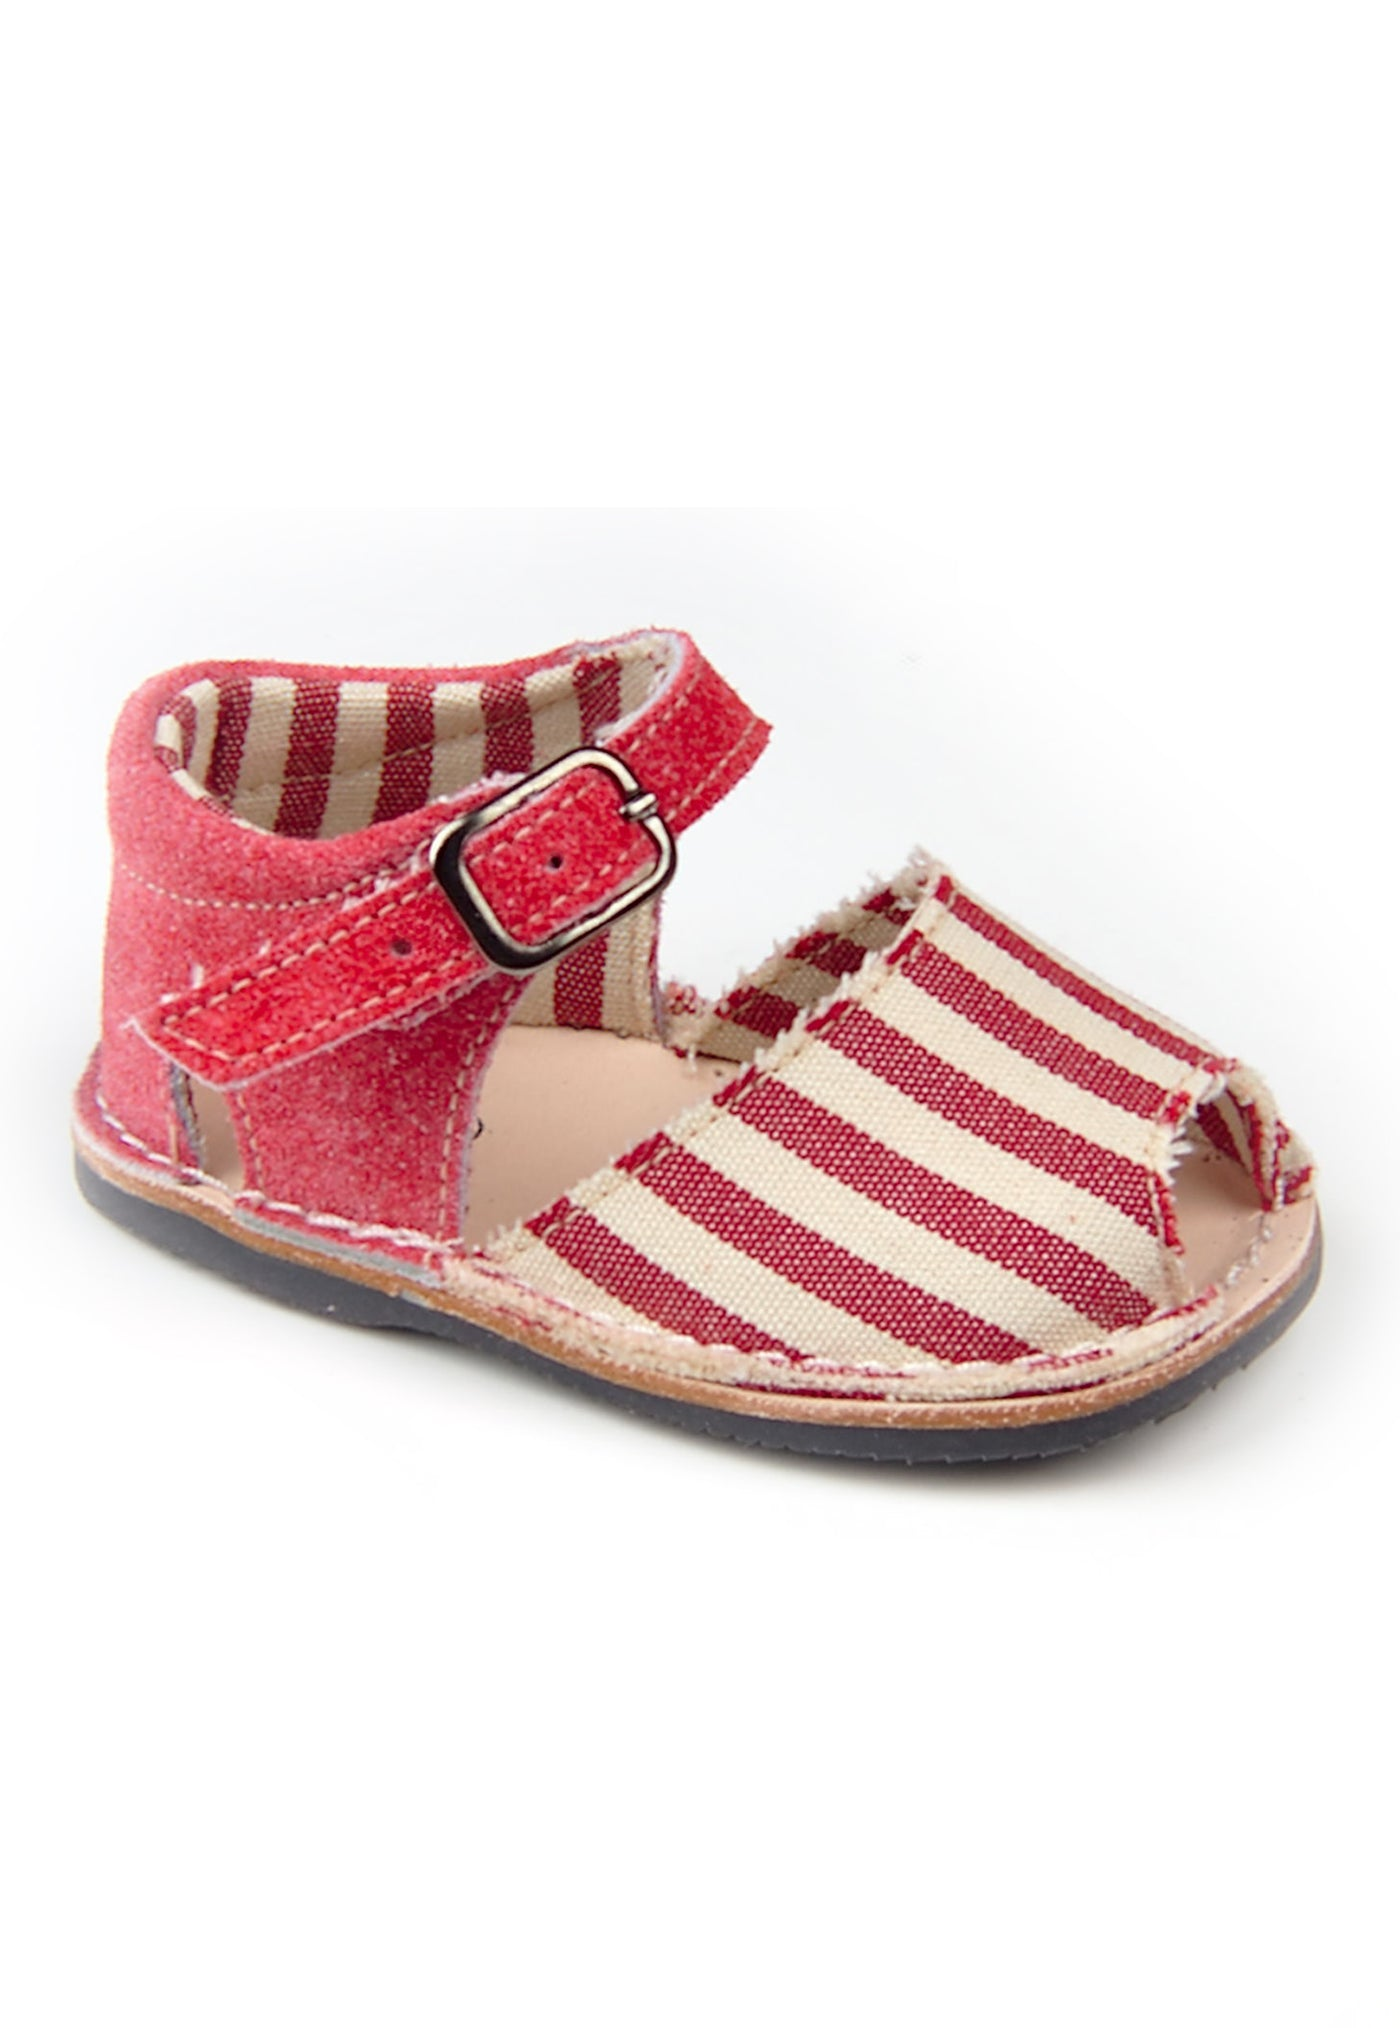 Casual Sandals Stripes Red Boys Leather